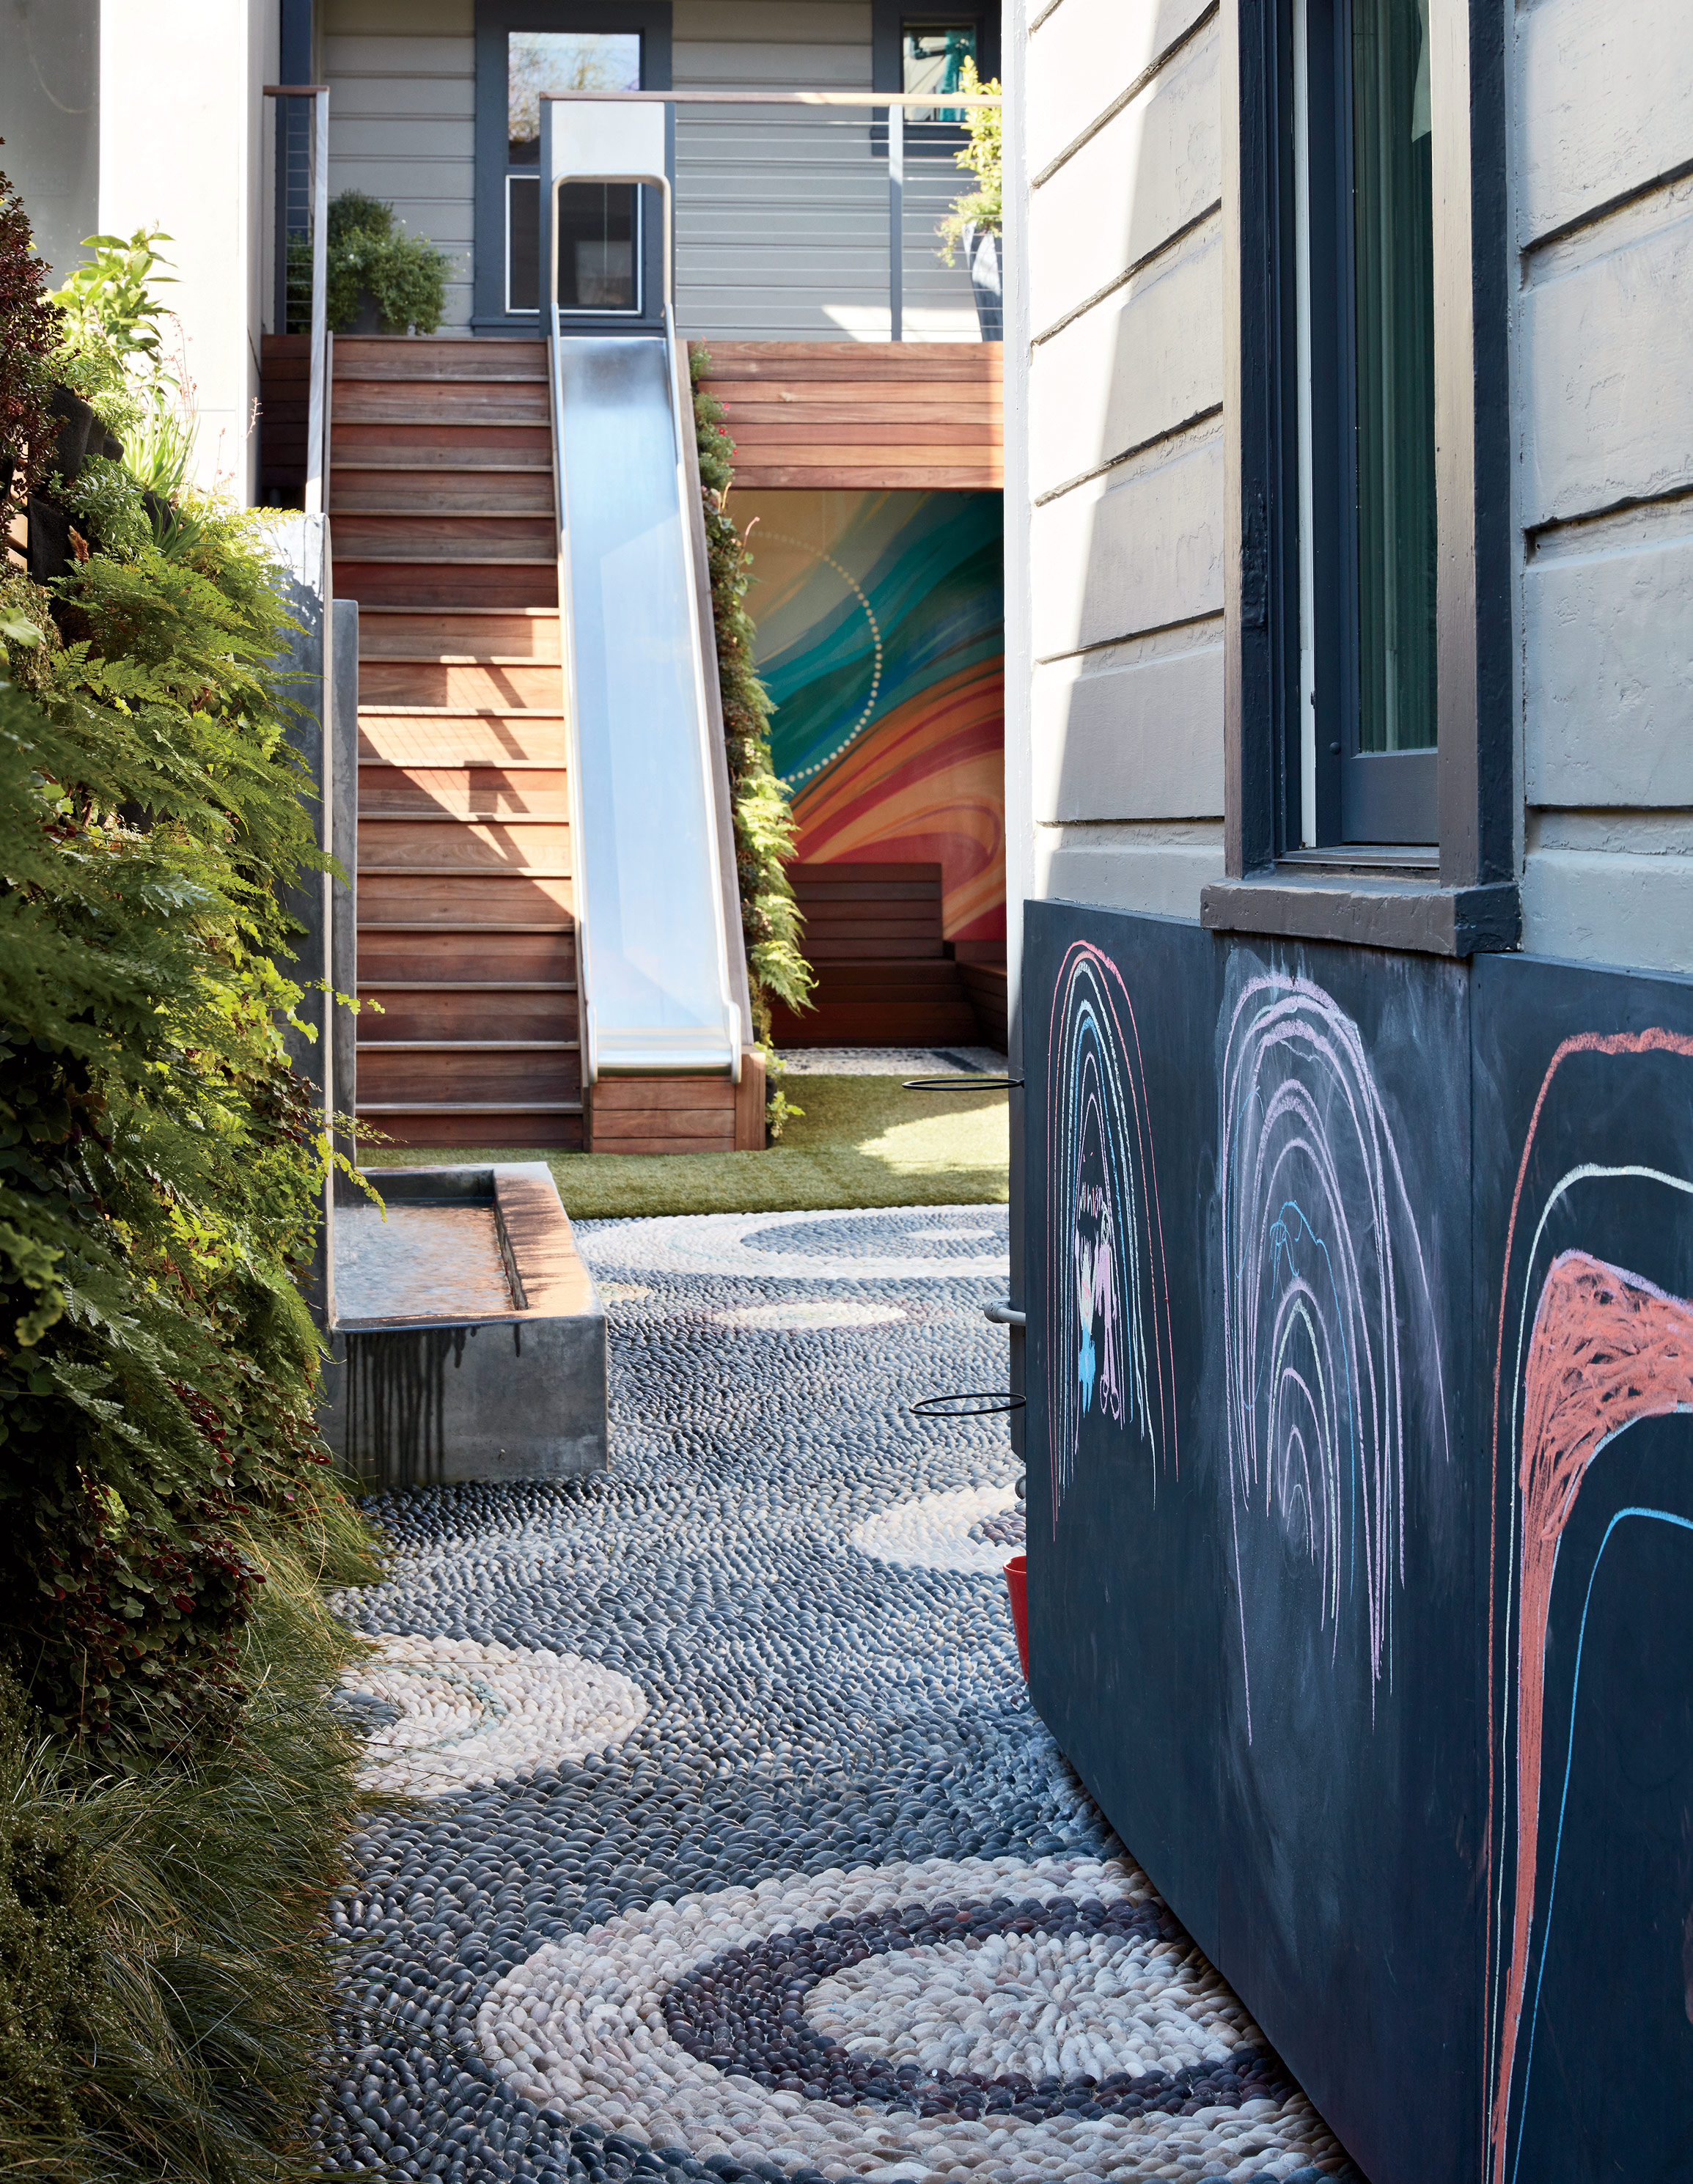 A backyard features a chalkboard paint wall